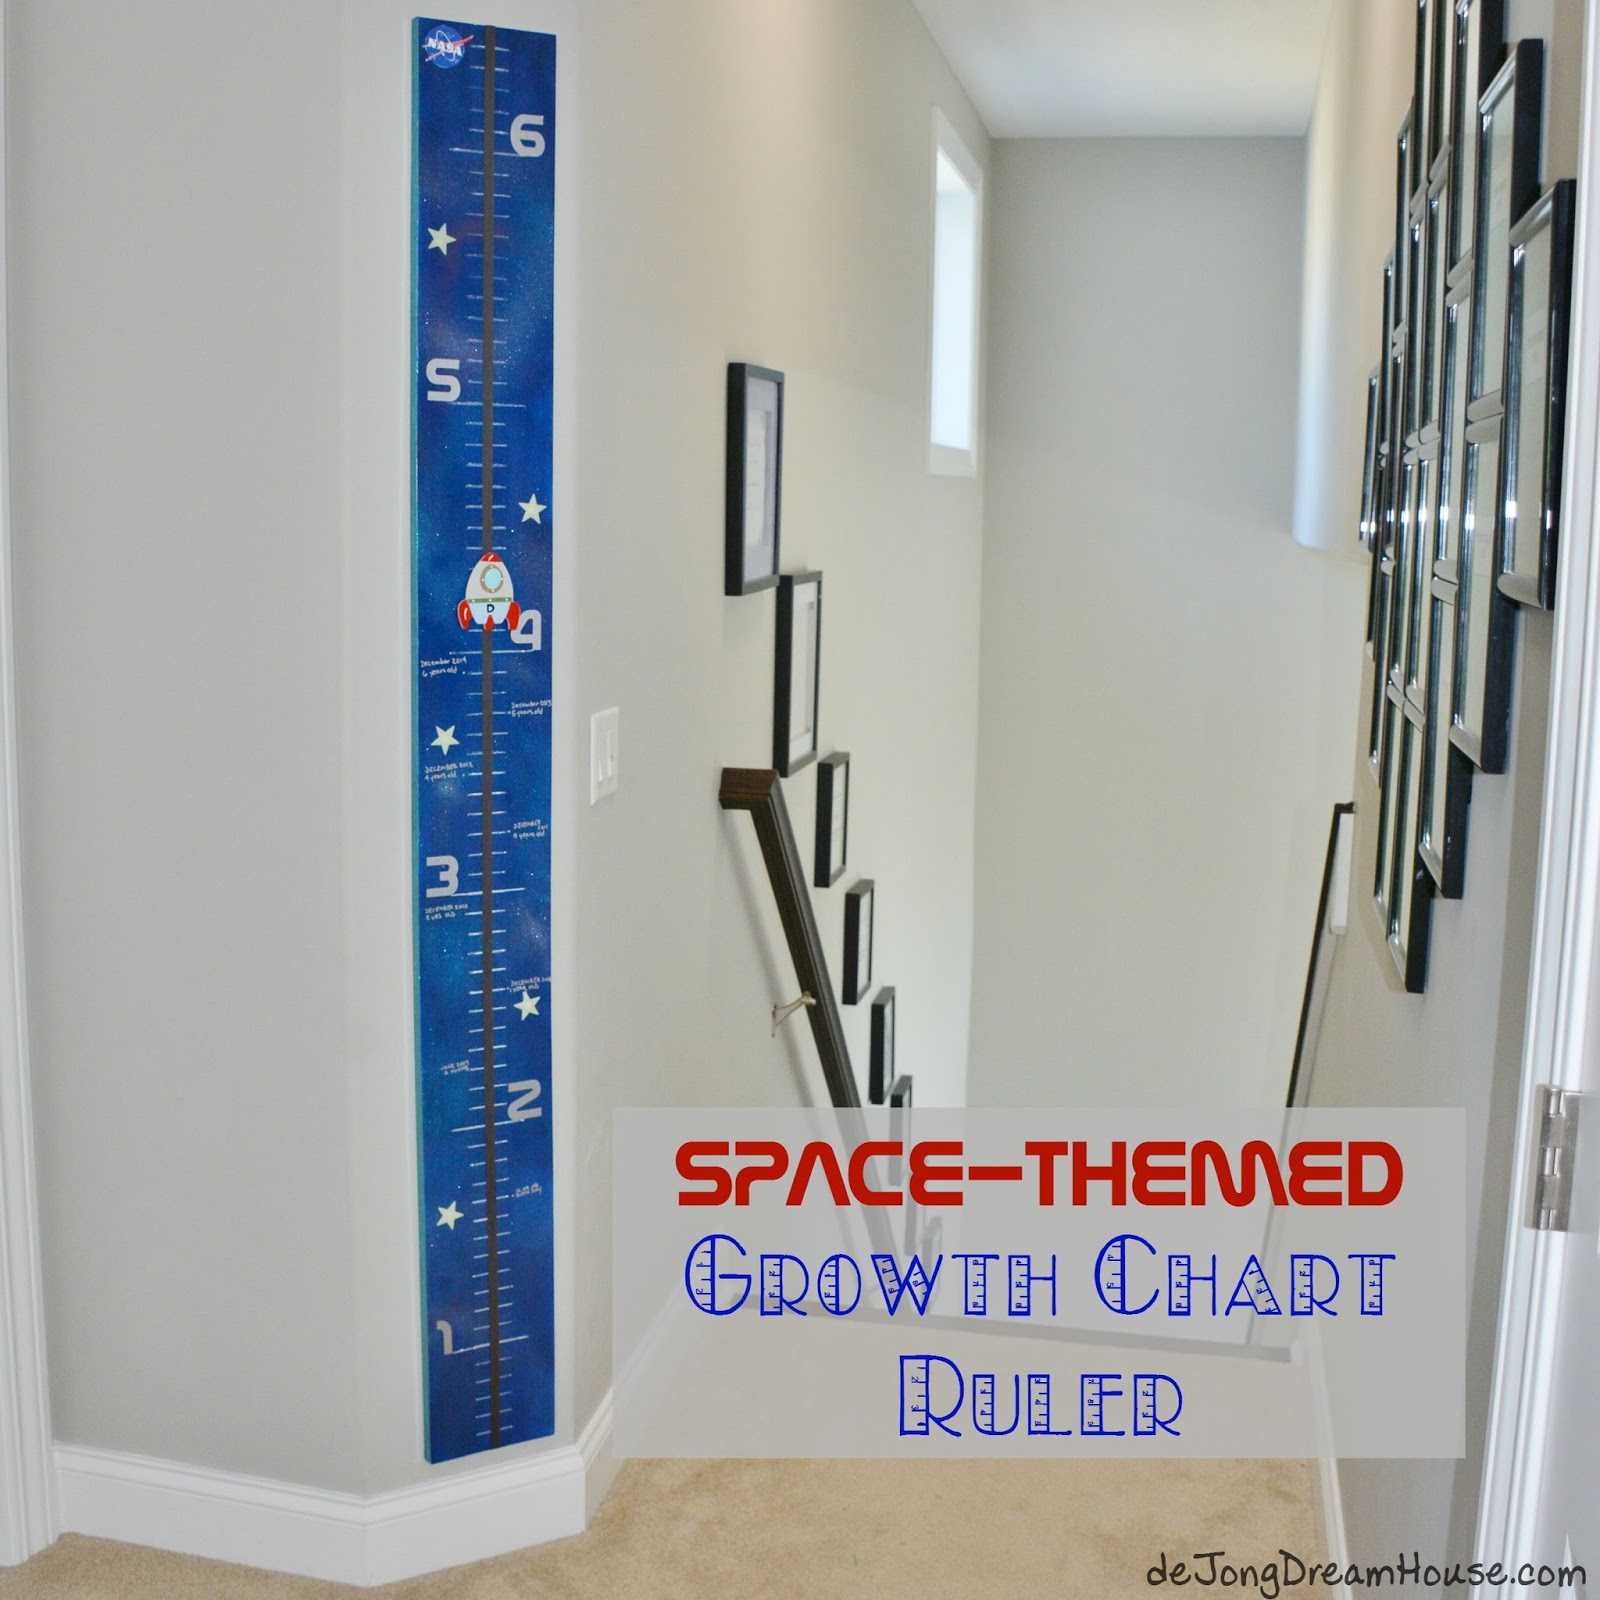 spacethemed growth chart ruler